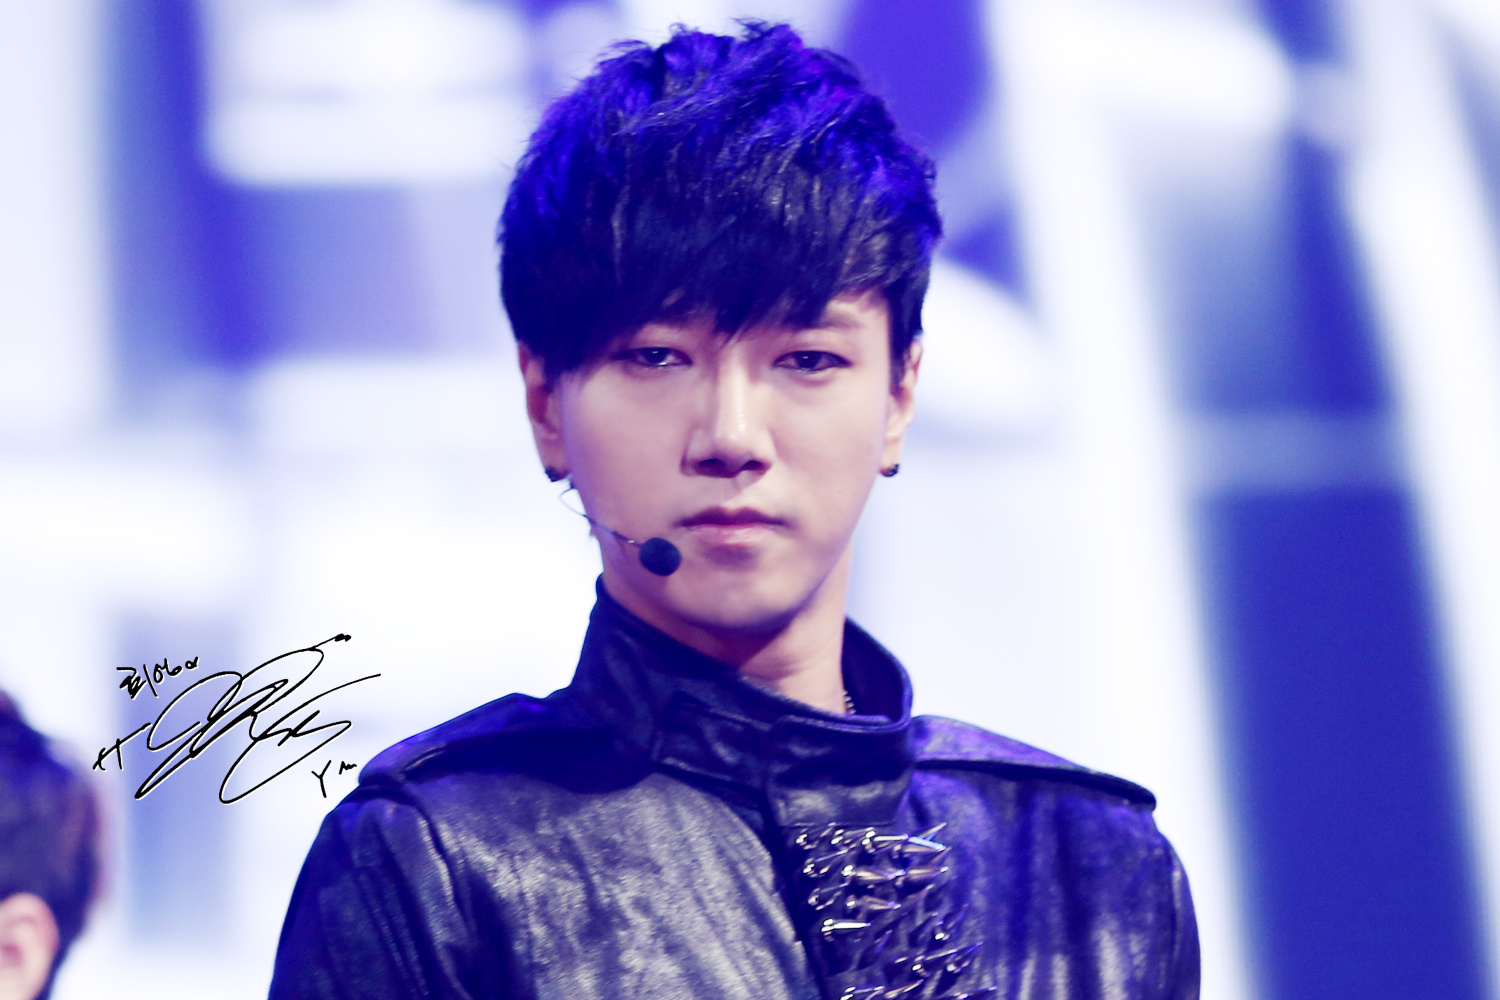 Seoul Music Awards with Yesung  5P      From 130131Yesung 2013